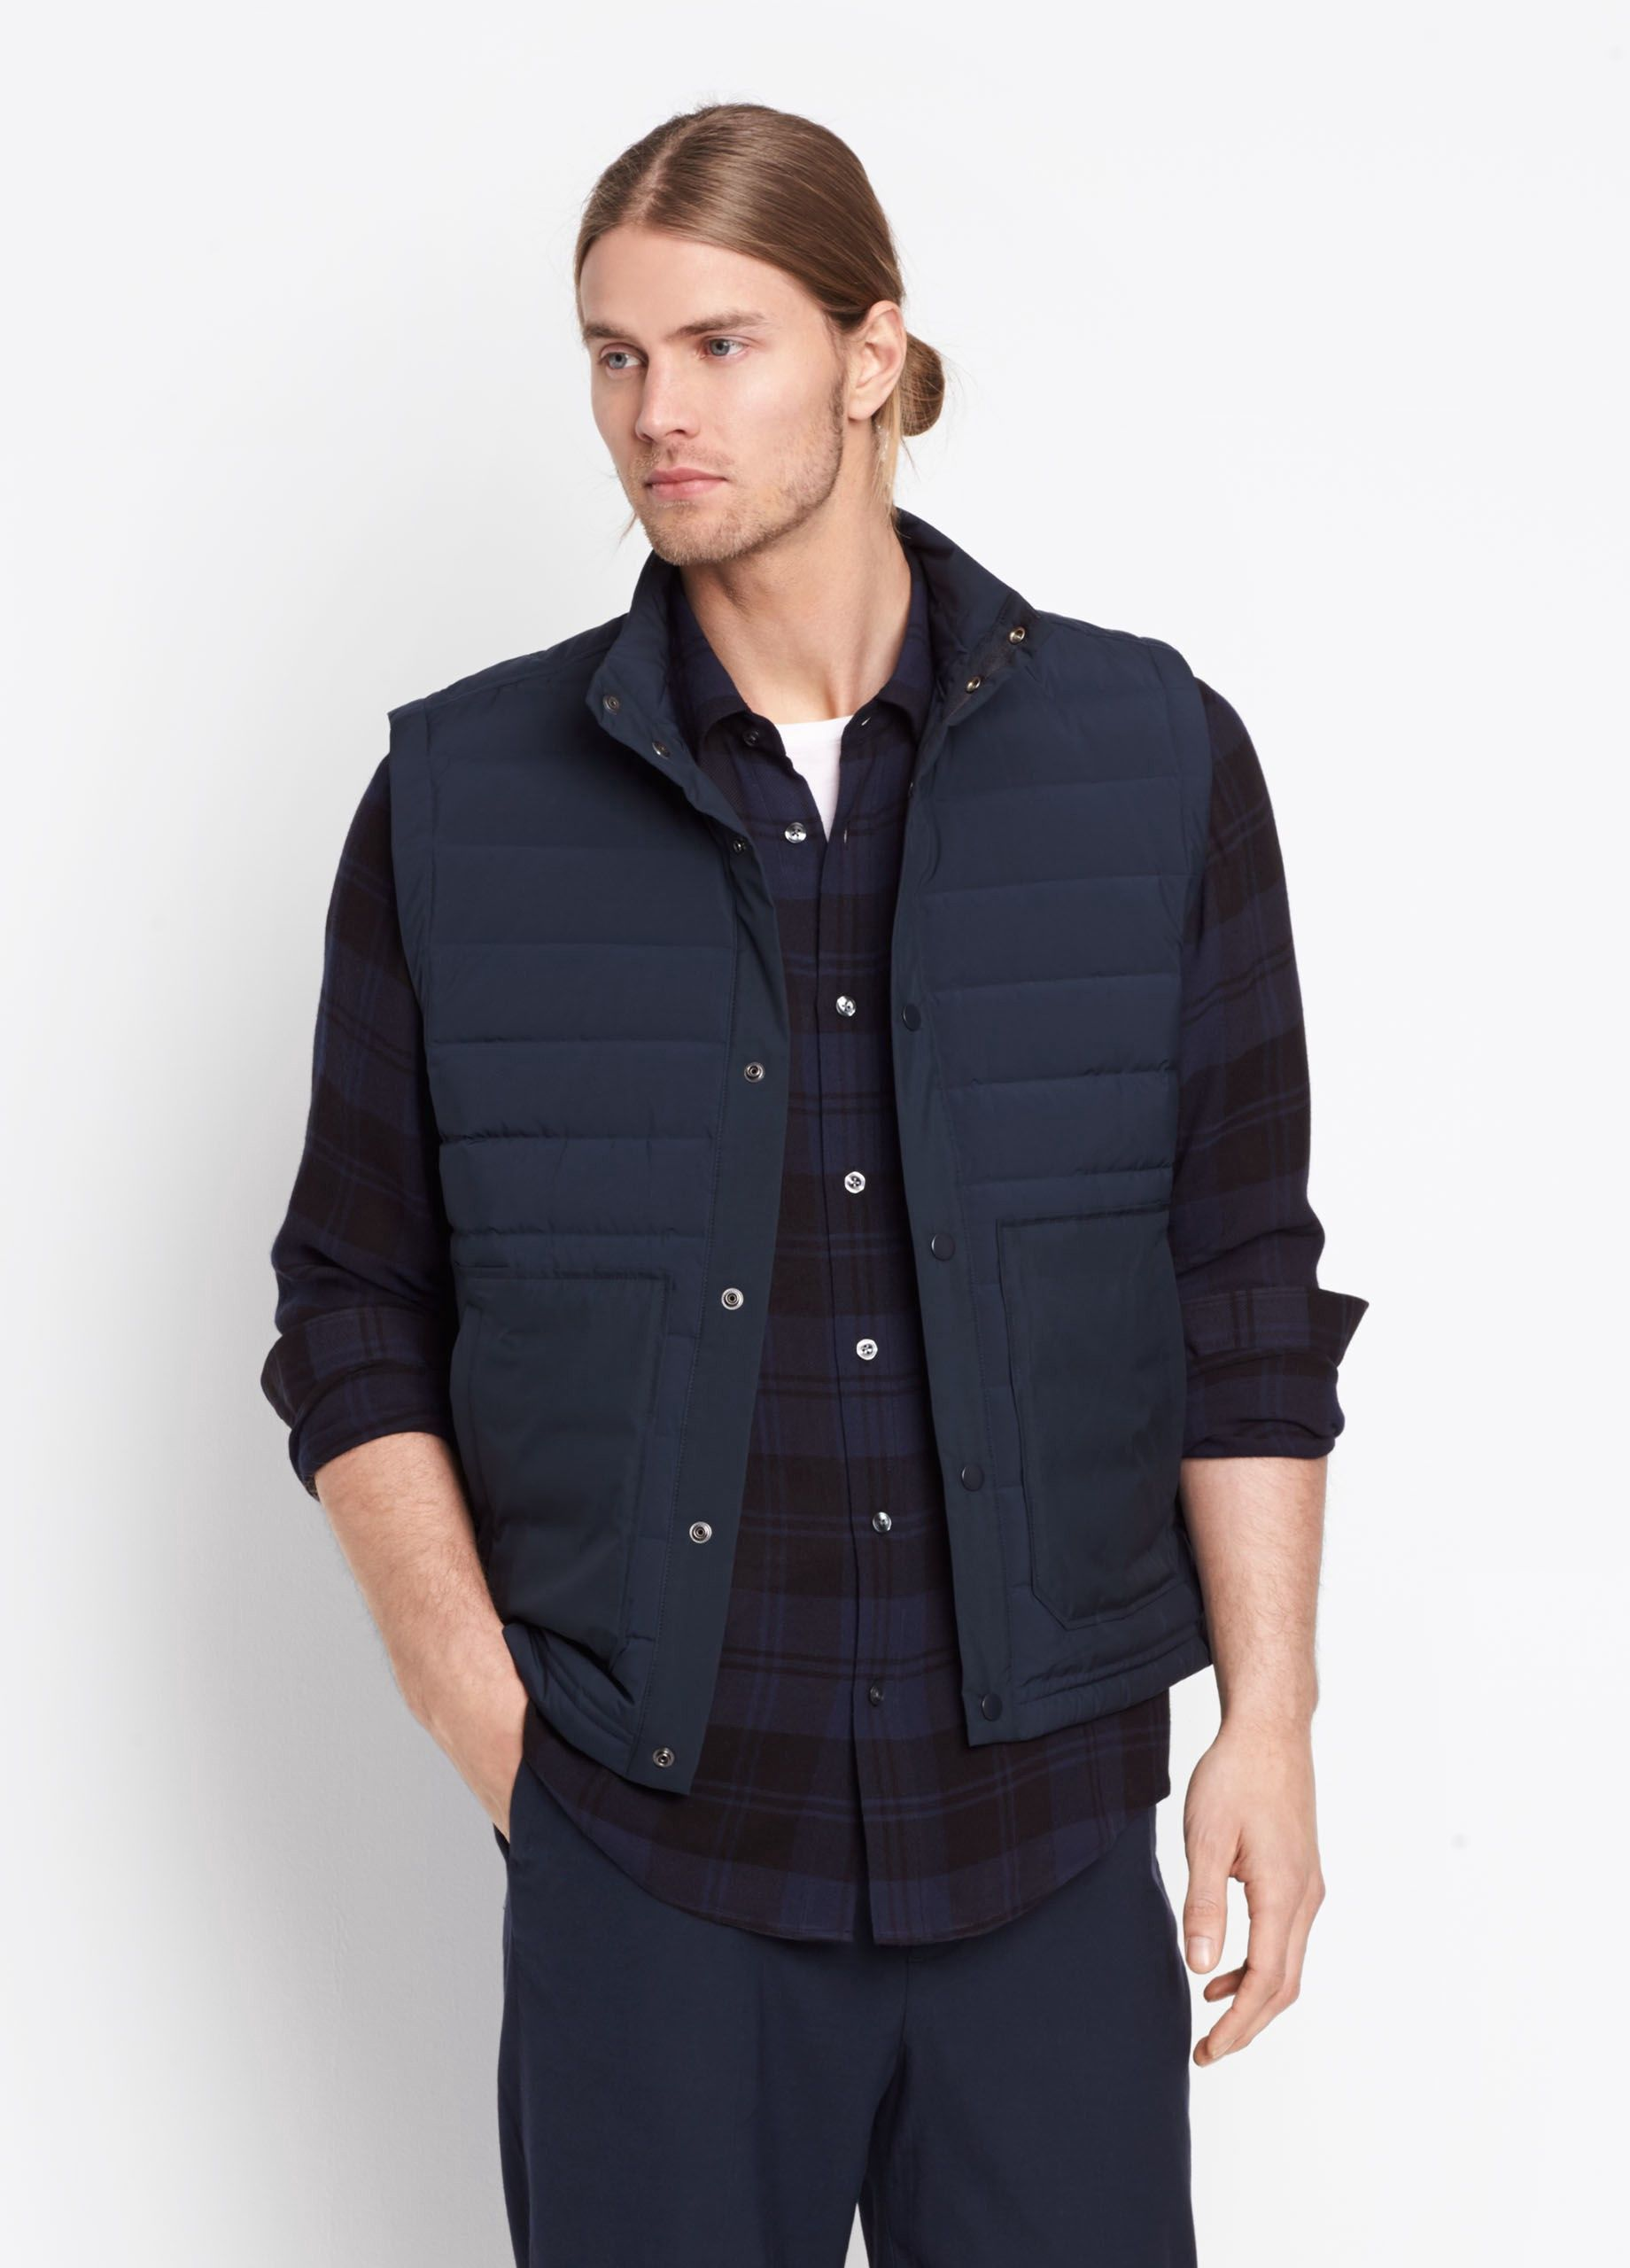 VINCE Quilted Down Vest - Coastal Blue. #vince #cloth #all | Vince ... : vince quilted jacket - Adamdwight.com